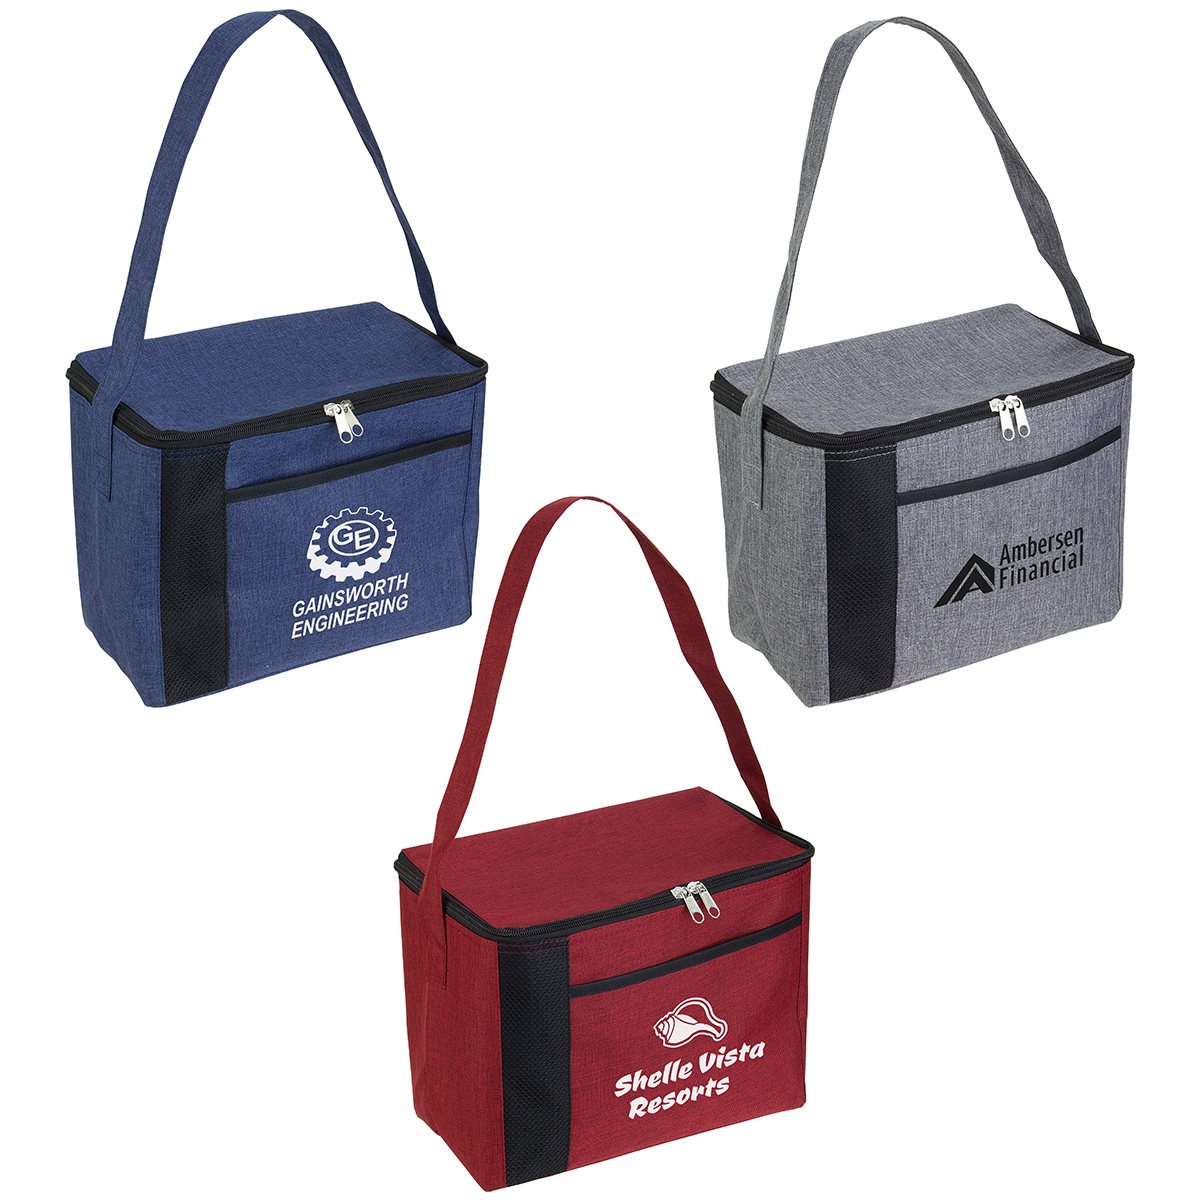 Greystone Square Cooler Bag, WBA-GS18, 1 Colour Imprint